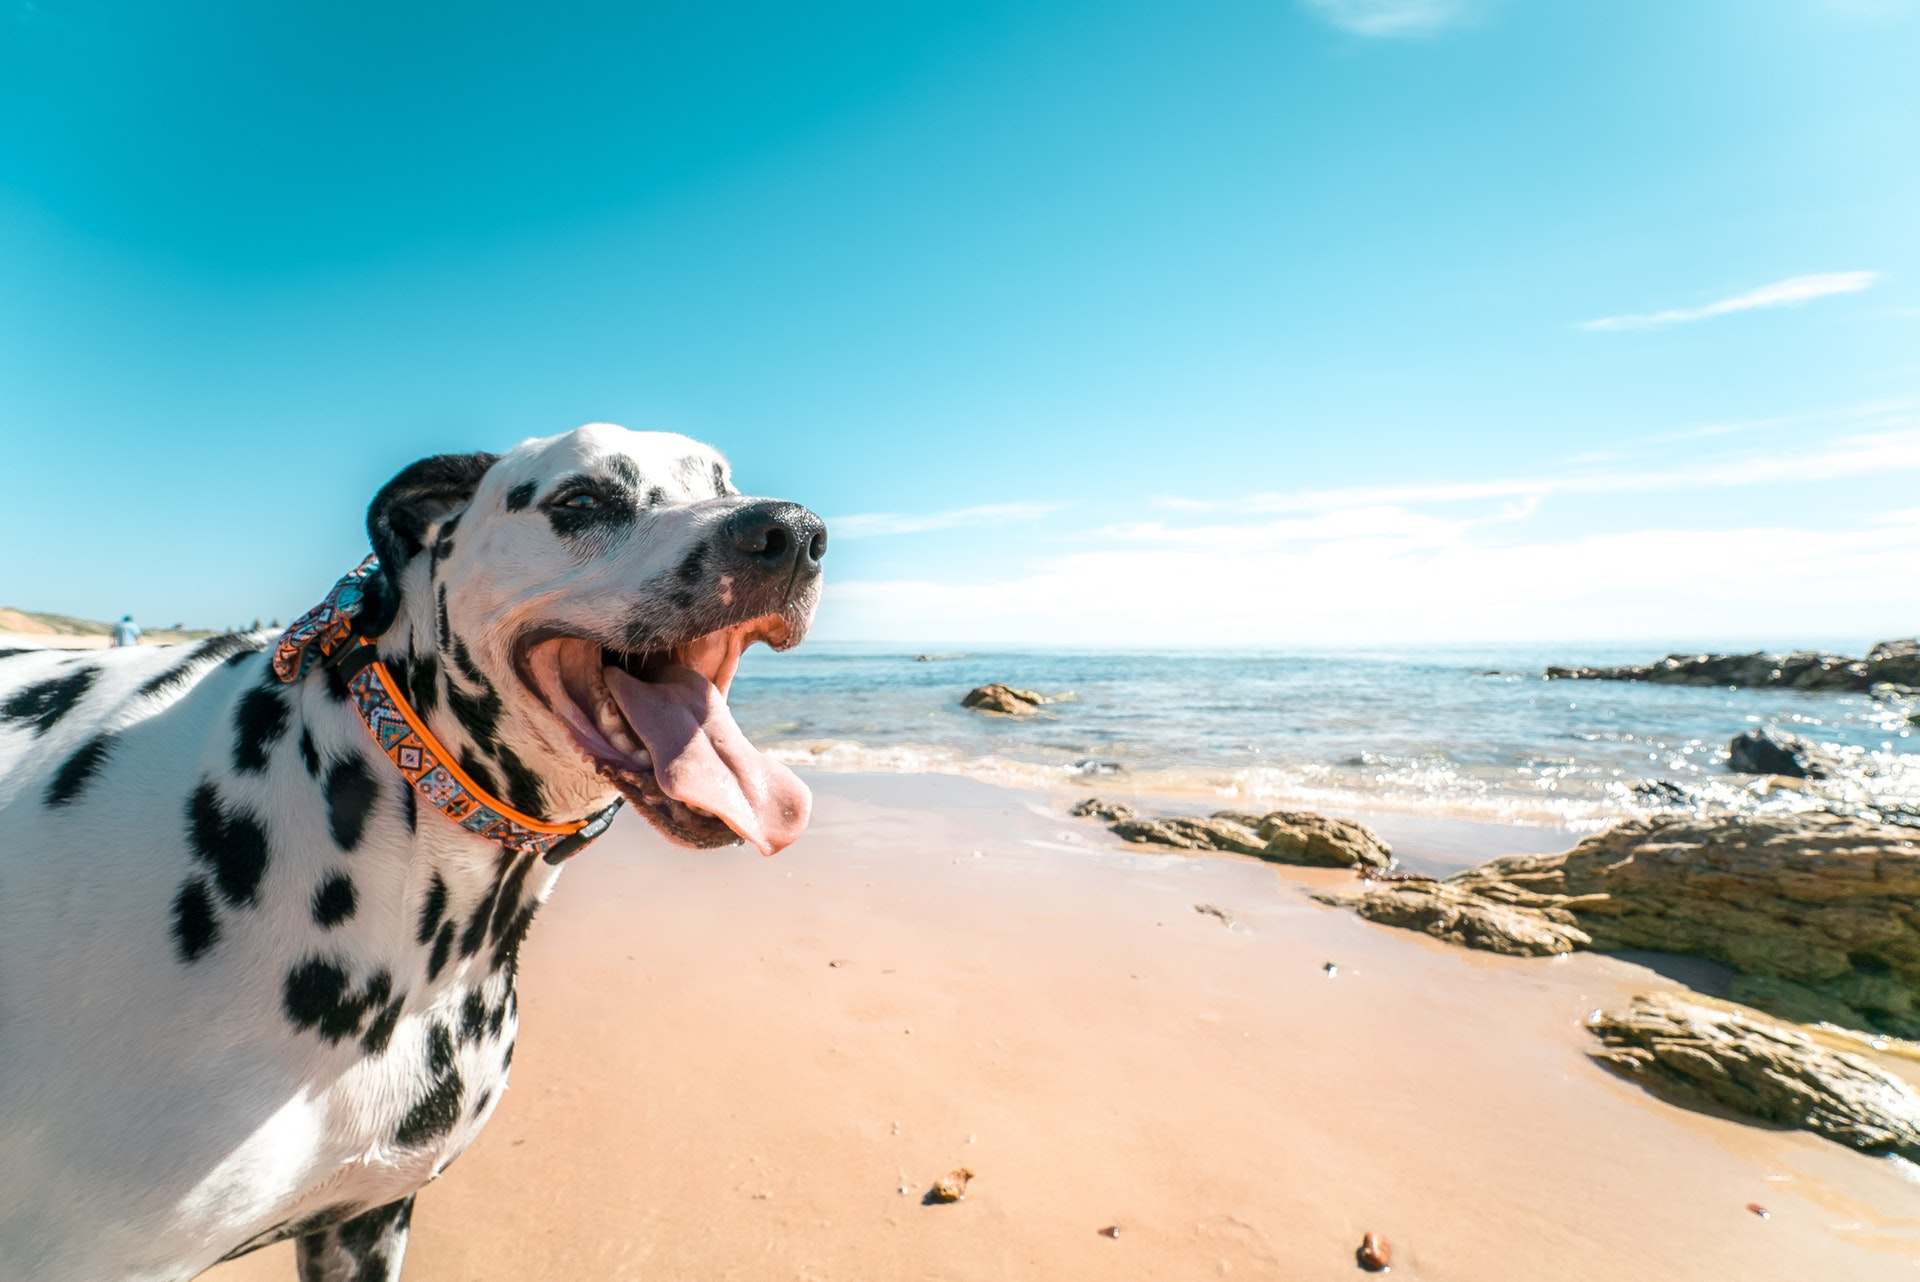 A spotted dog, smiling at the camera in the foreground with the smooth sand and ocean behind it.